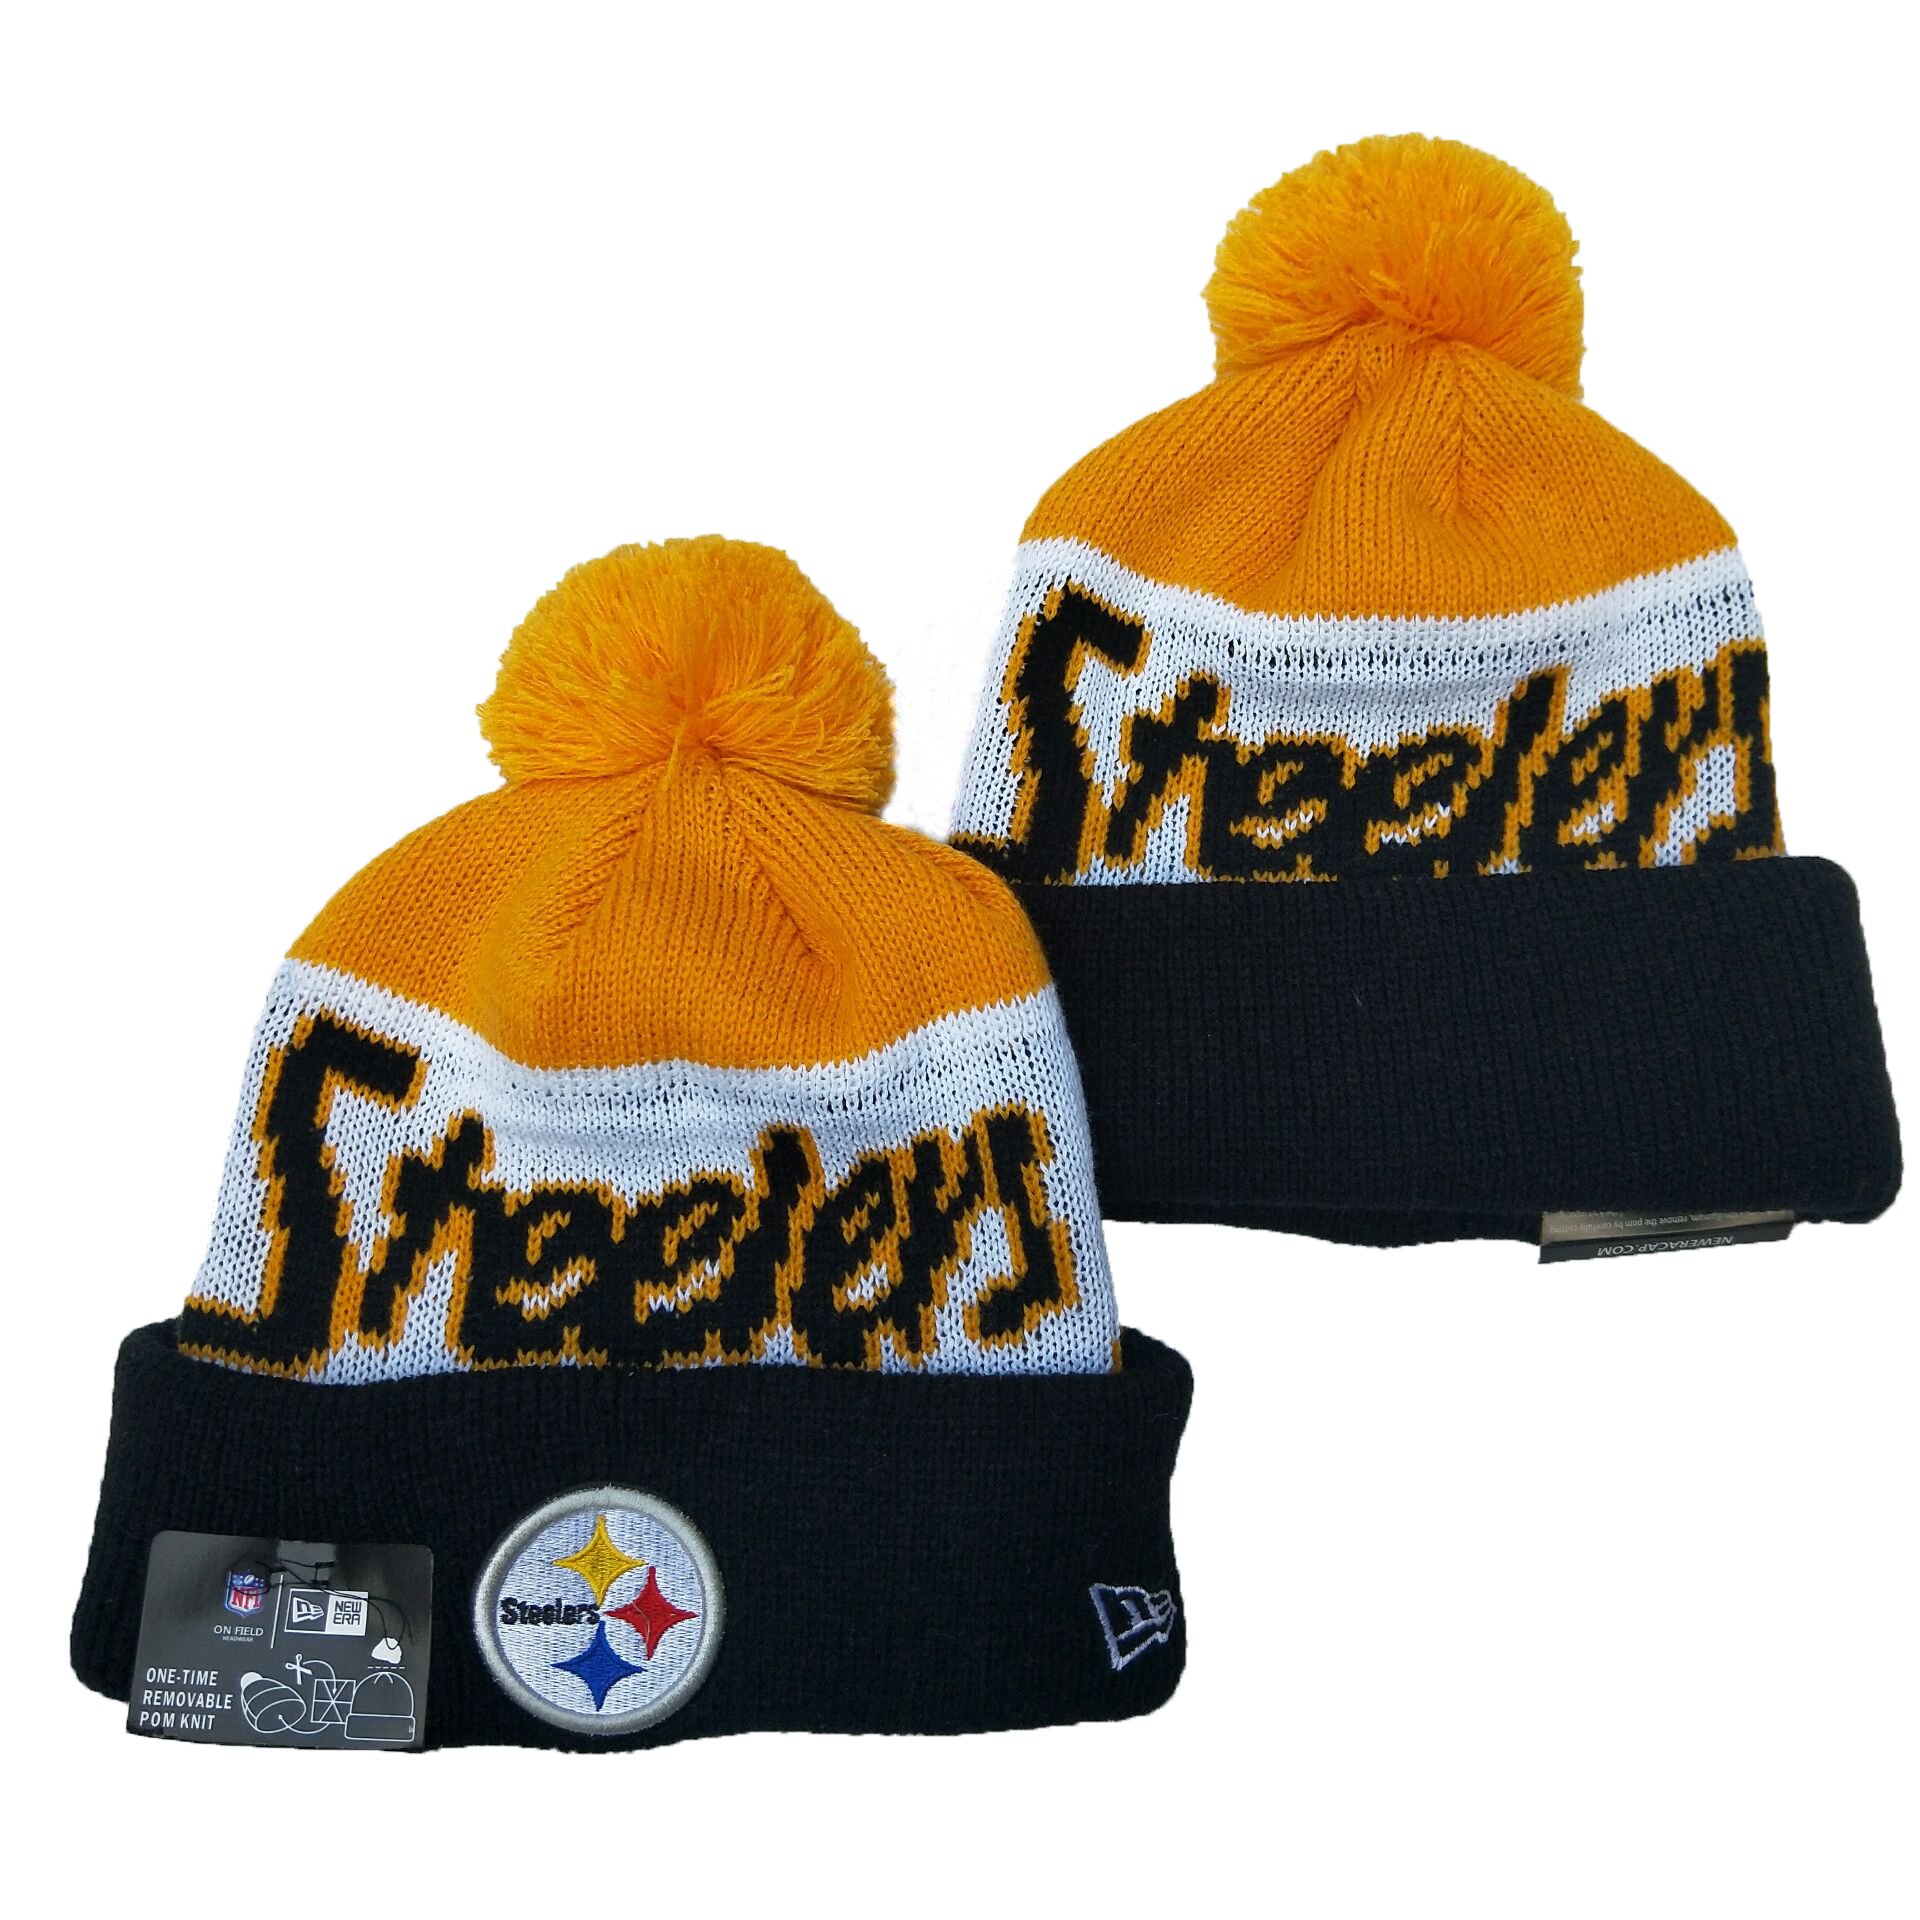 Steelers Team Logo Yellow White Navy Pom Knit Hat YD